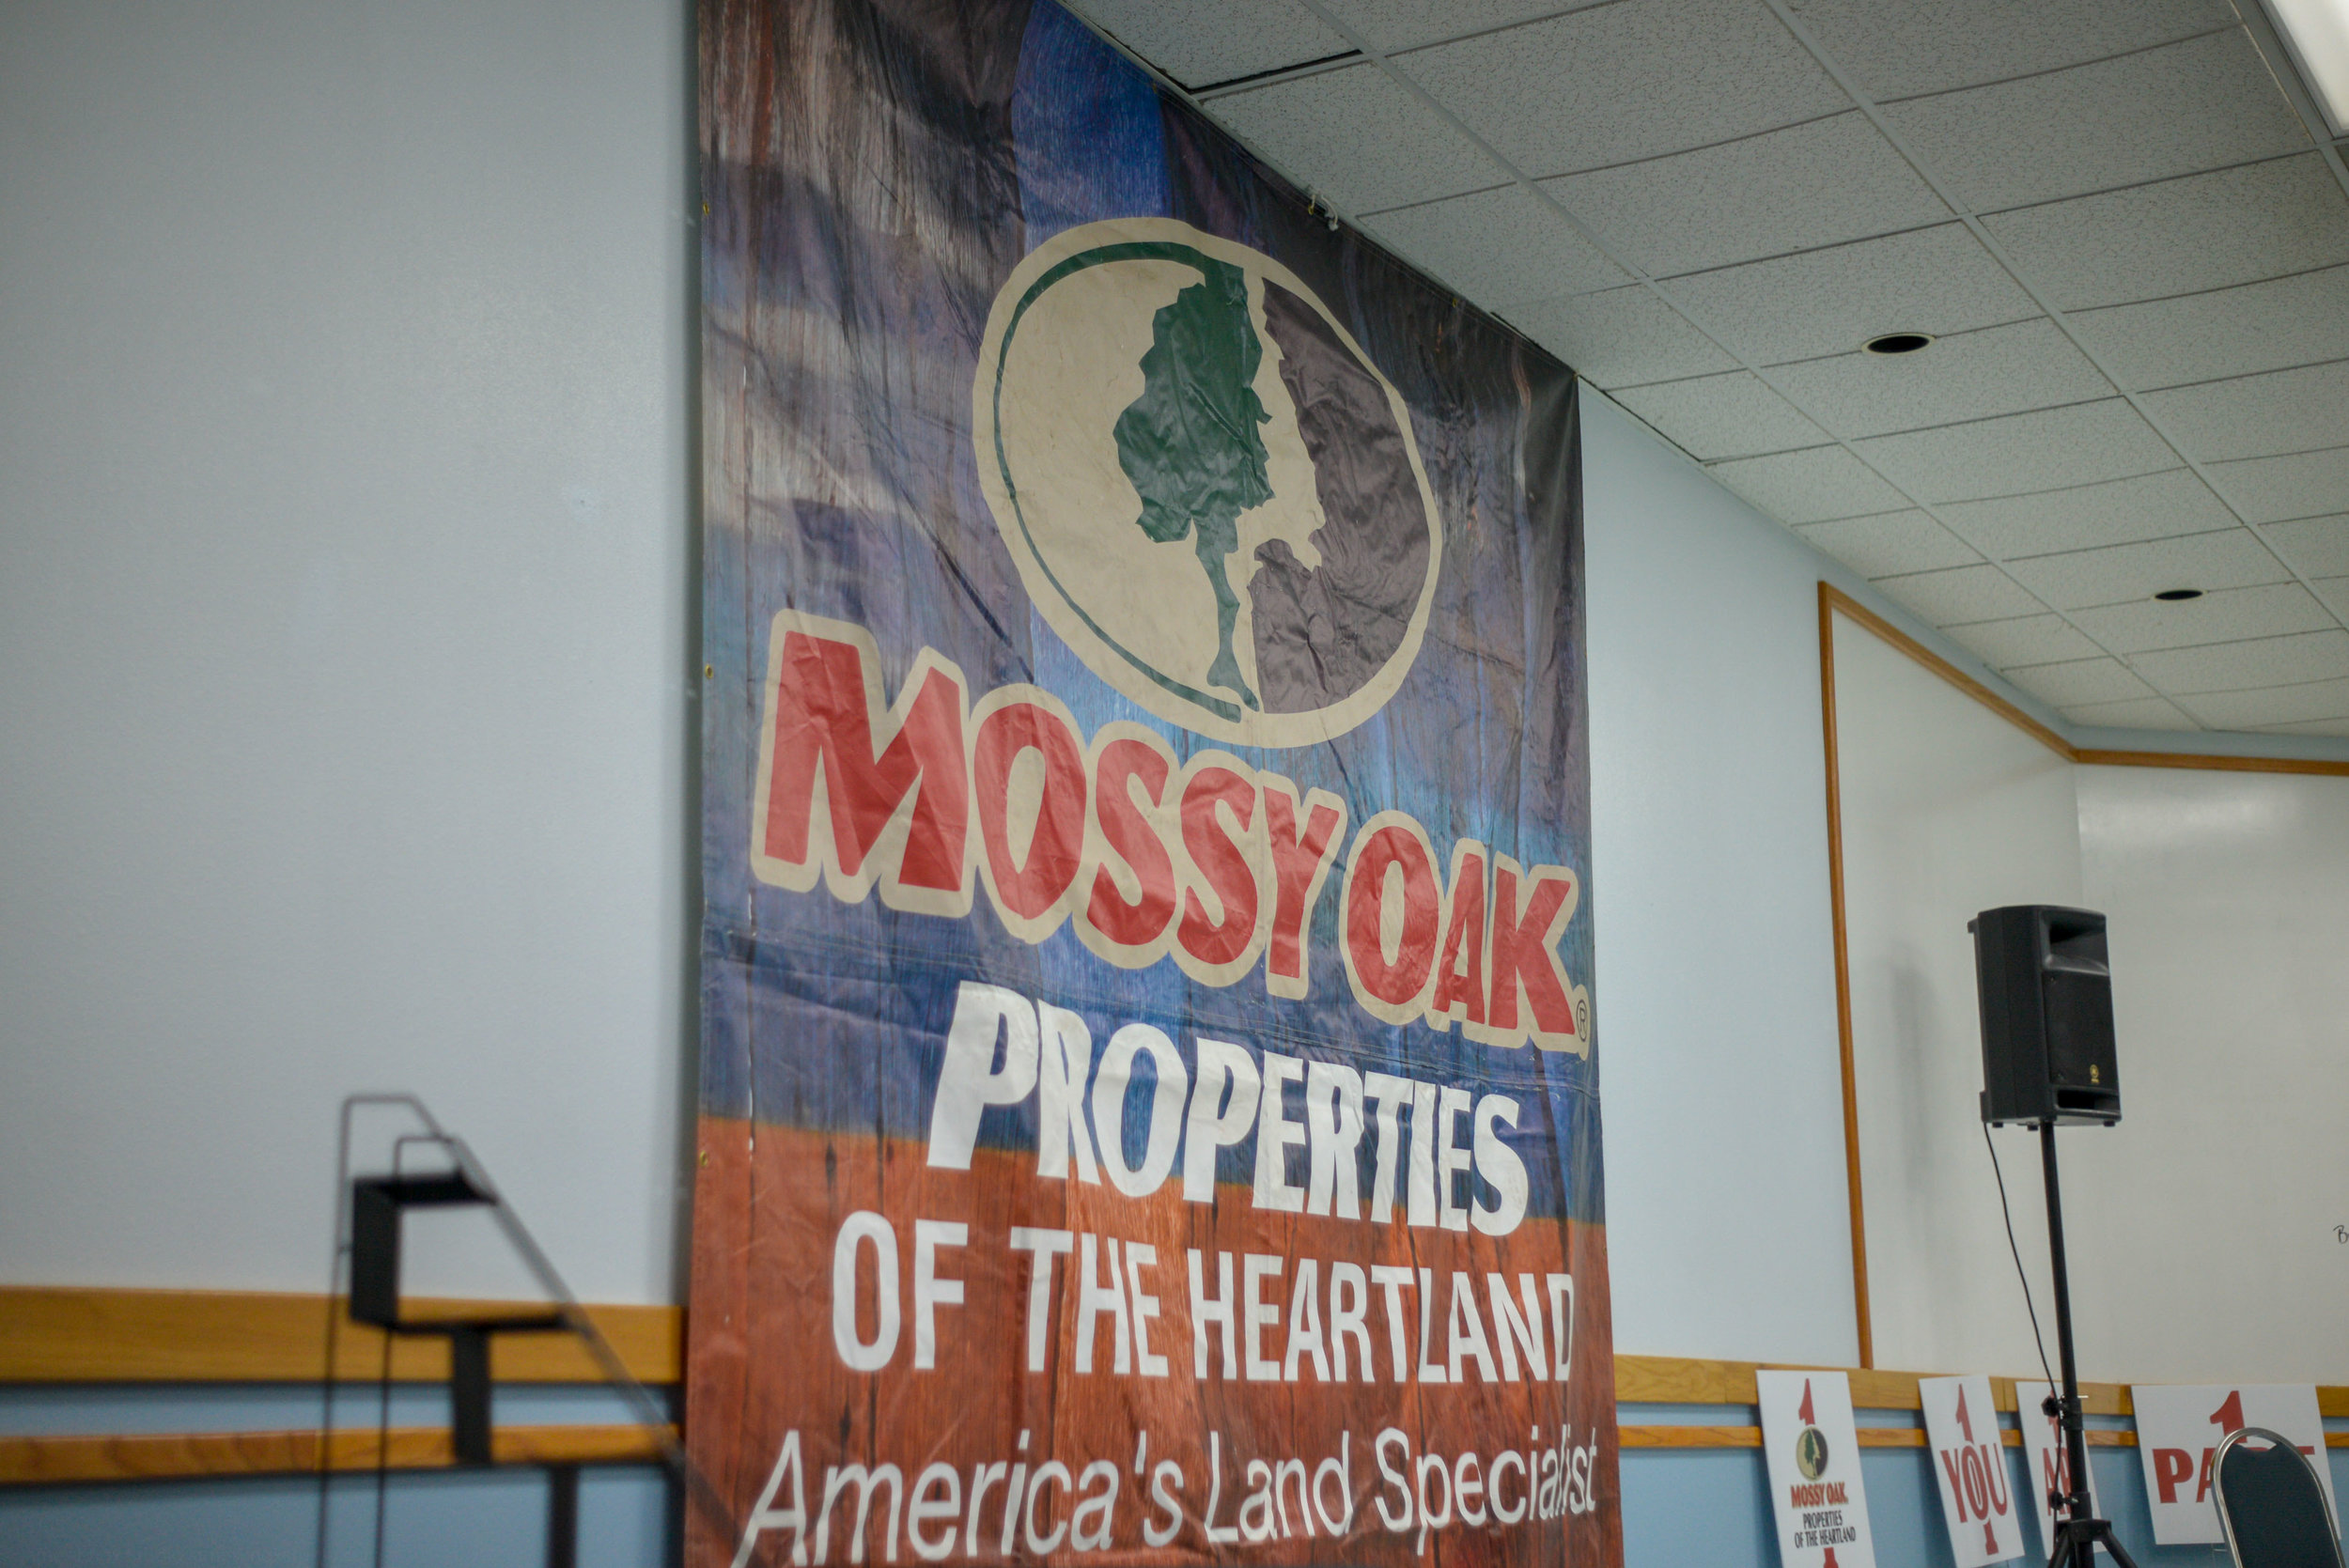 Mossy Oak Properties of the Heartland Land Summit March 28-29, 2019 in Lamar, MO - This Is The Official Image Gallery For Mossy Oak Property | 2019 Lamar Missouri Event